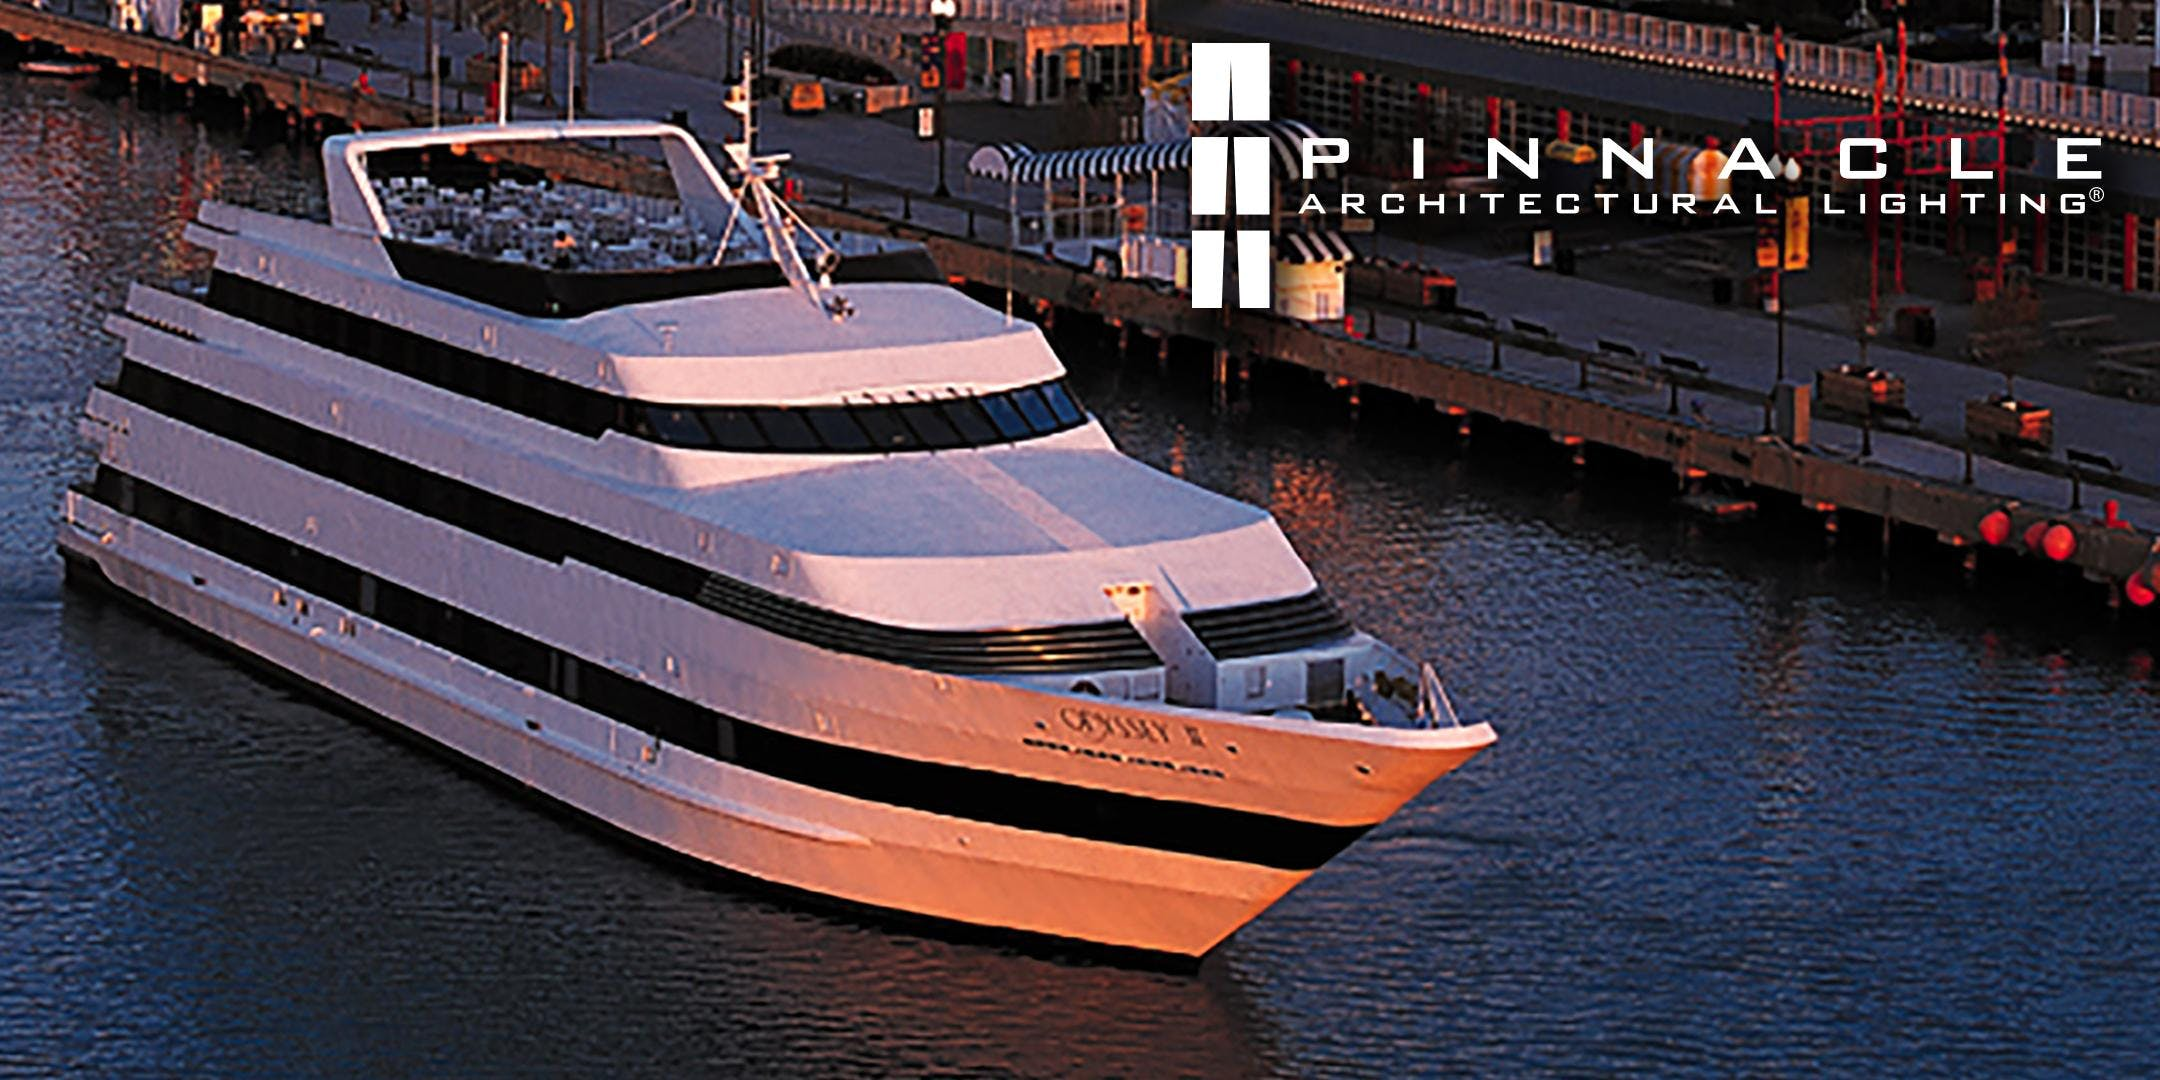 pinnacle architectural lighting boat party 5 30 pm boarding at